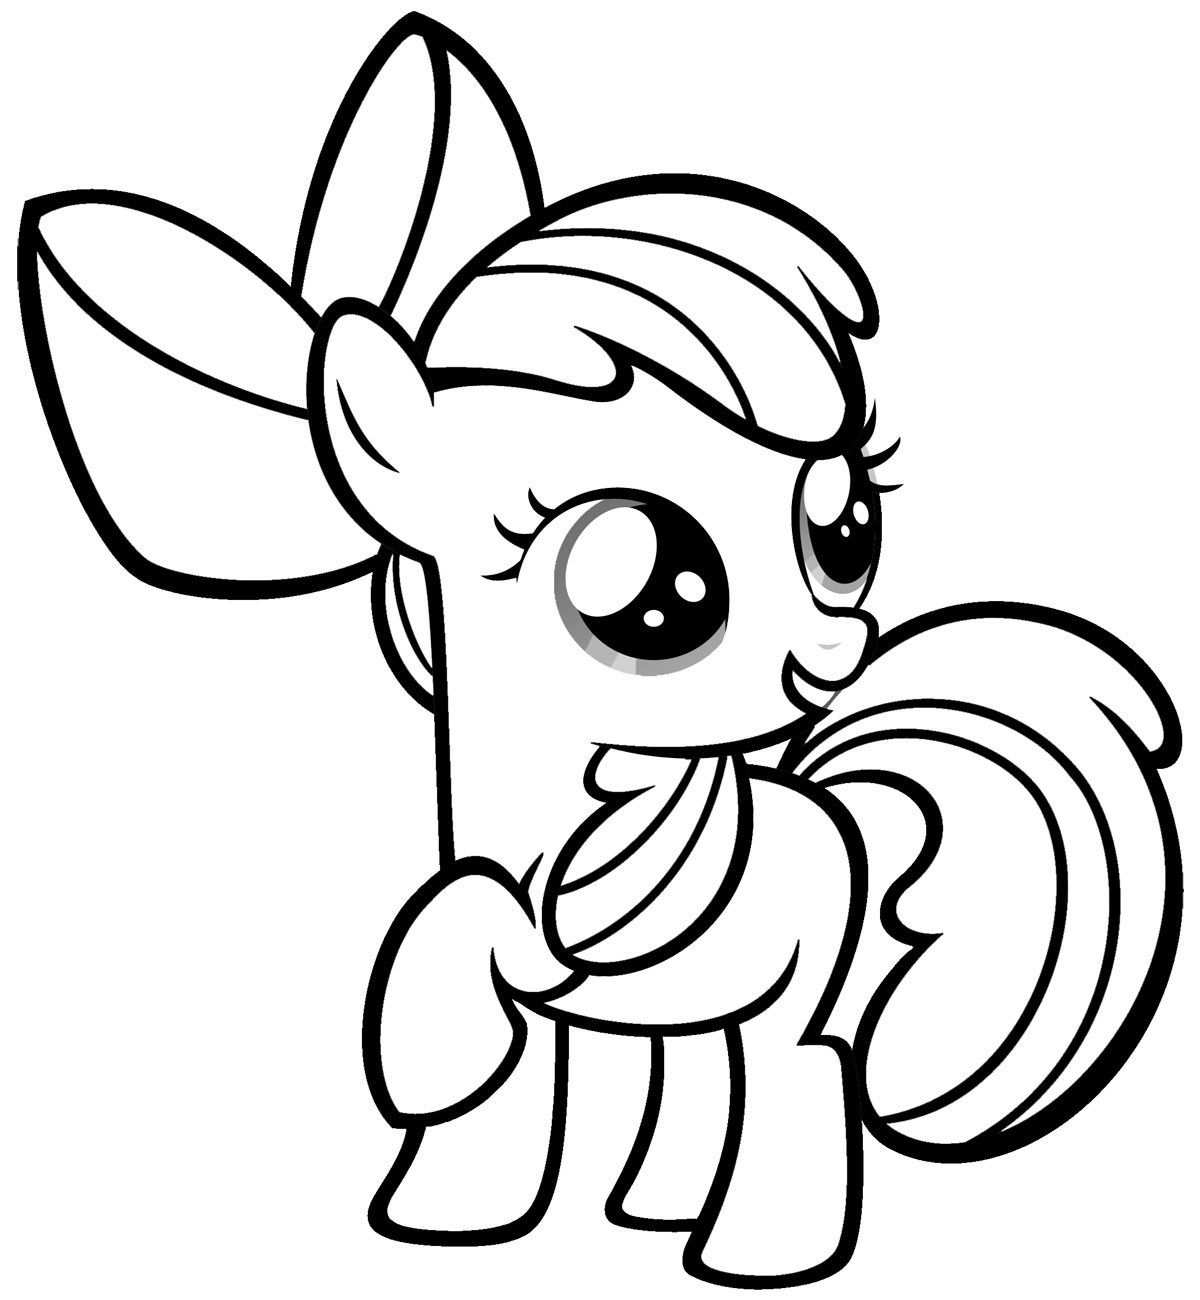 Free Printable My Little Pony Coloring Pages For Kids My Little Pony Printable My Little Pony Drawing My Little Pony Coloring